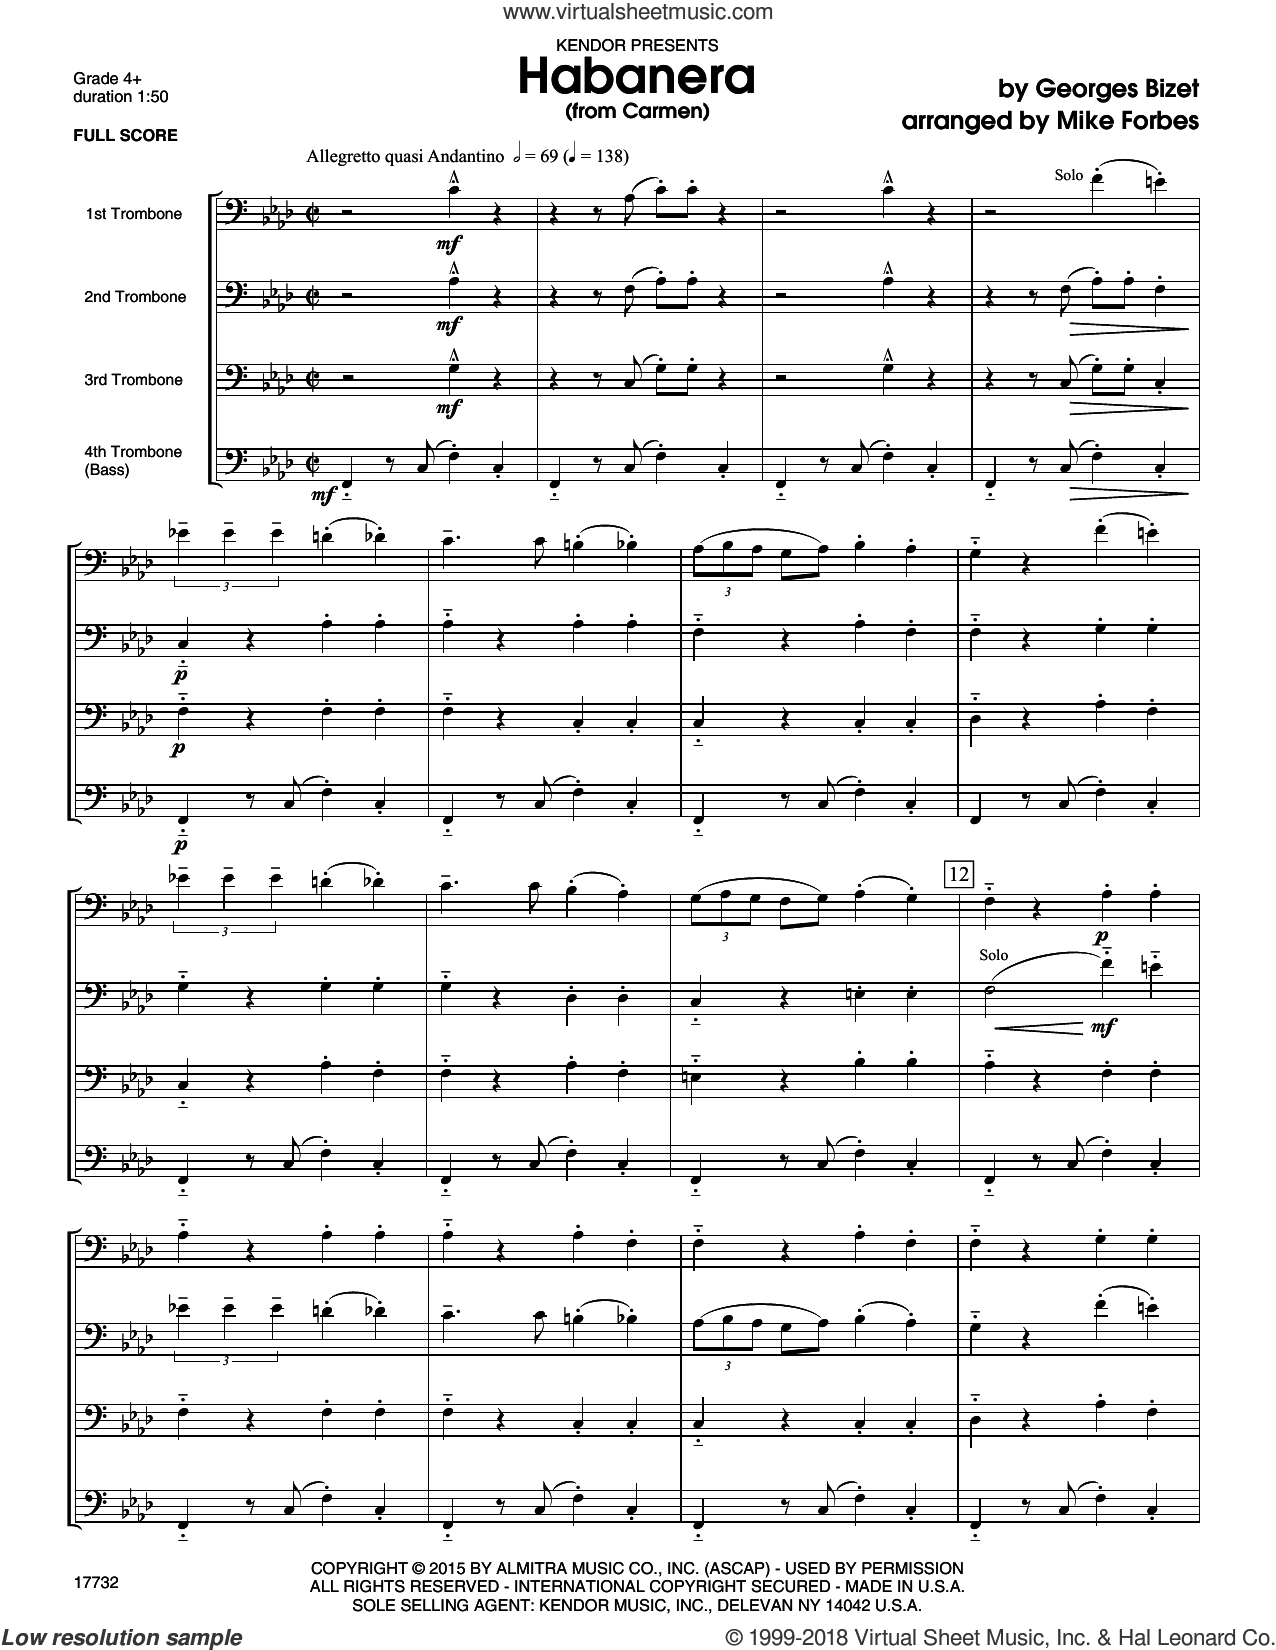 Habanera (from Carmen) (COMPLETE) sheet music for four trombones by Georges Bizet and Michael Forbes, classical score, intermediate skill level